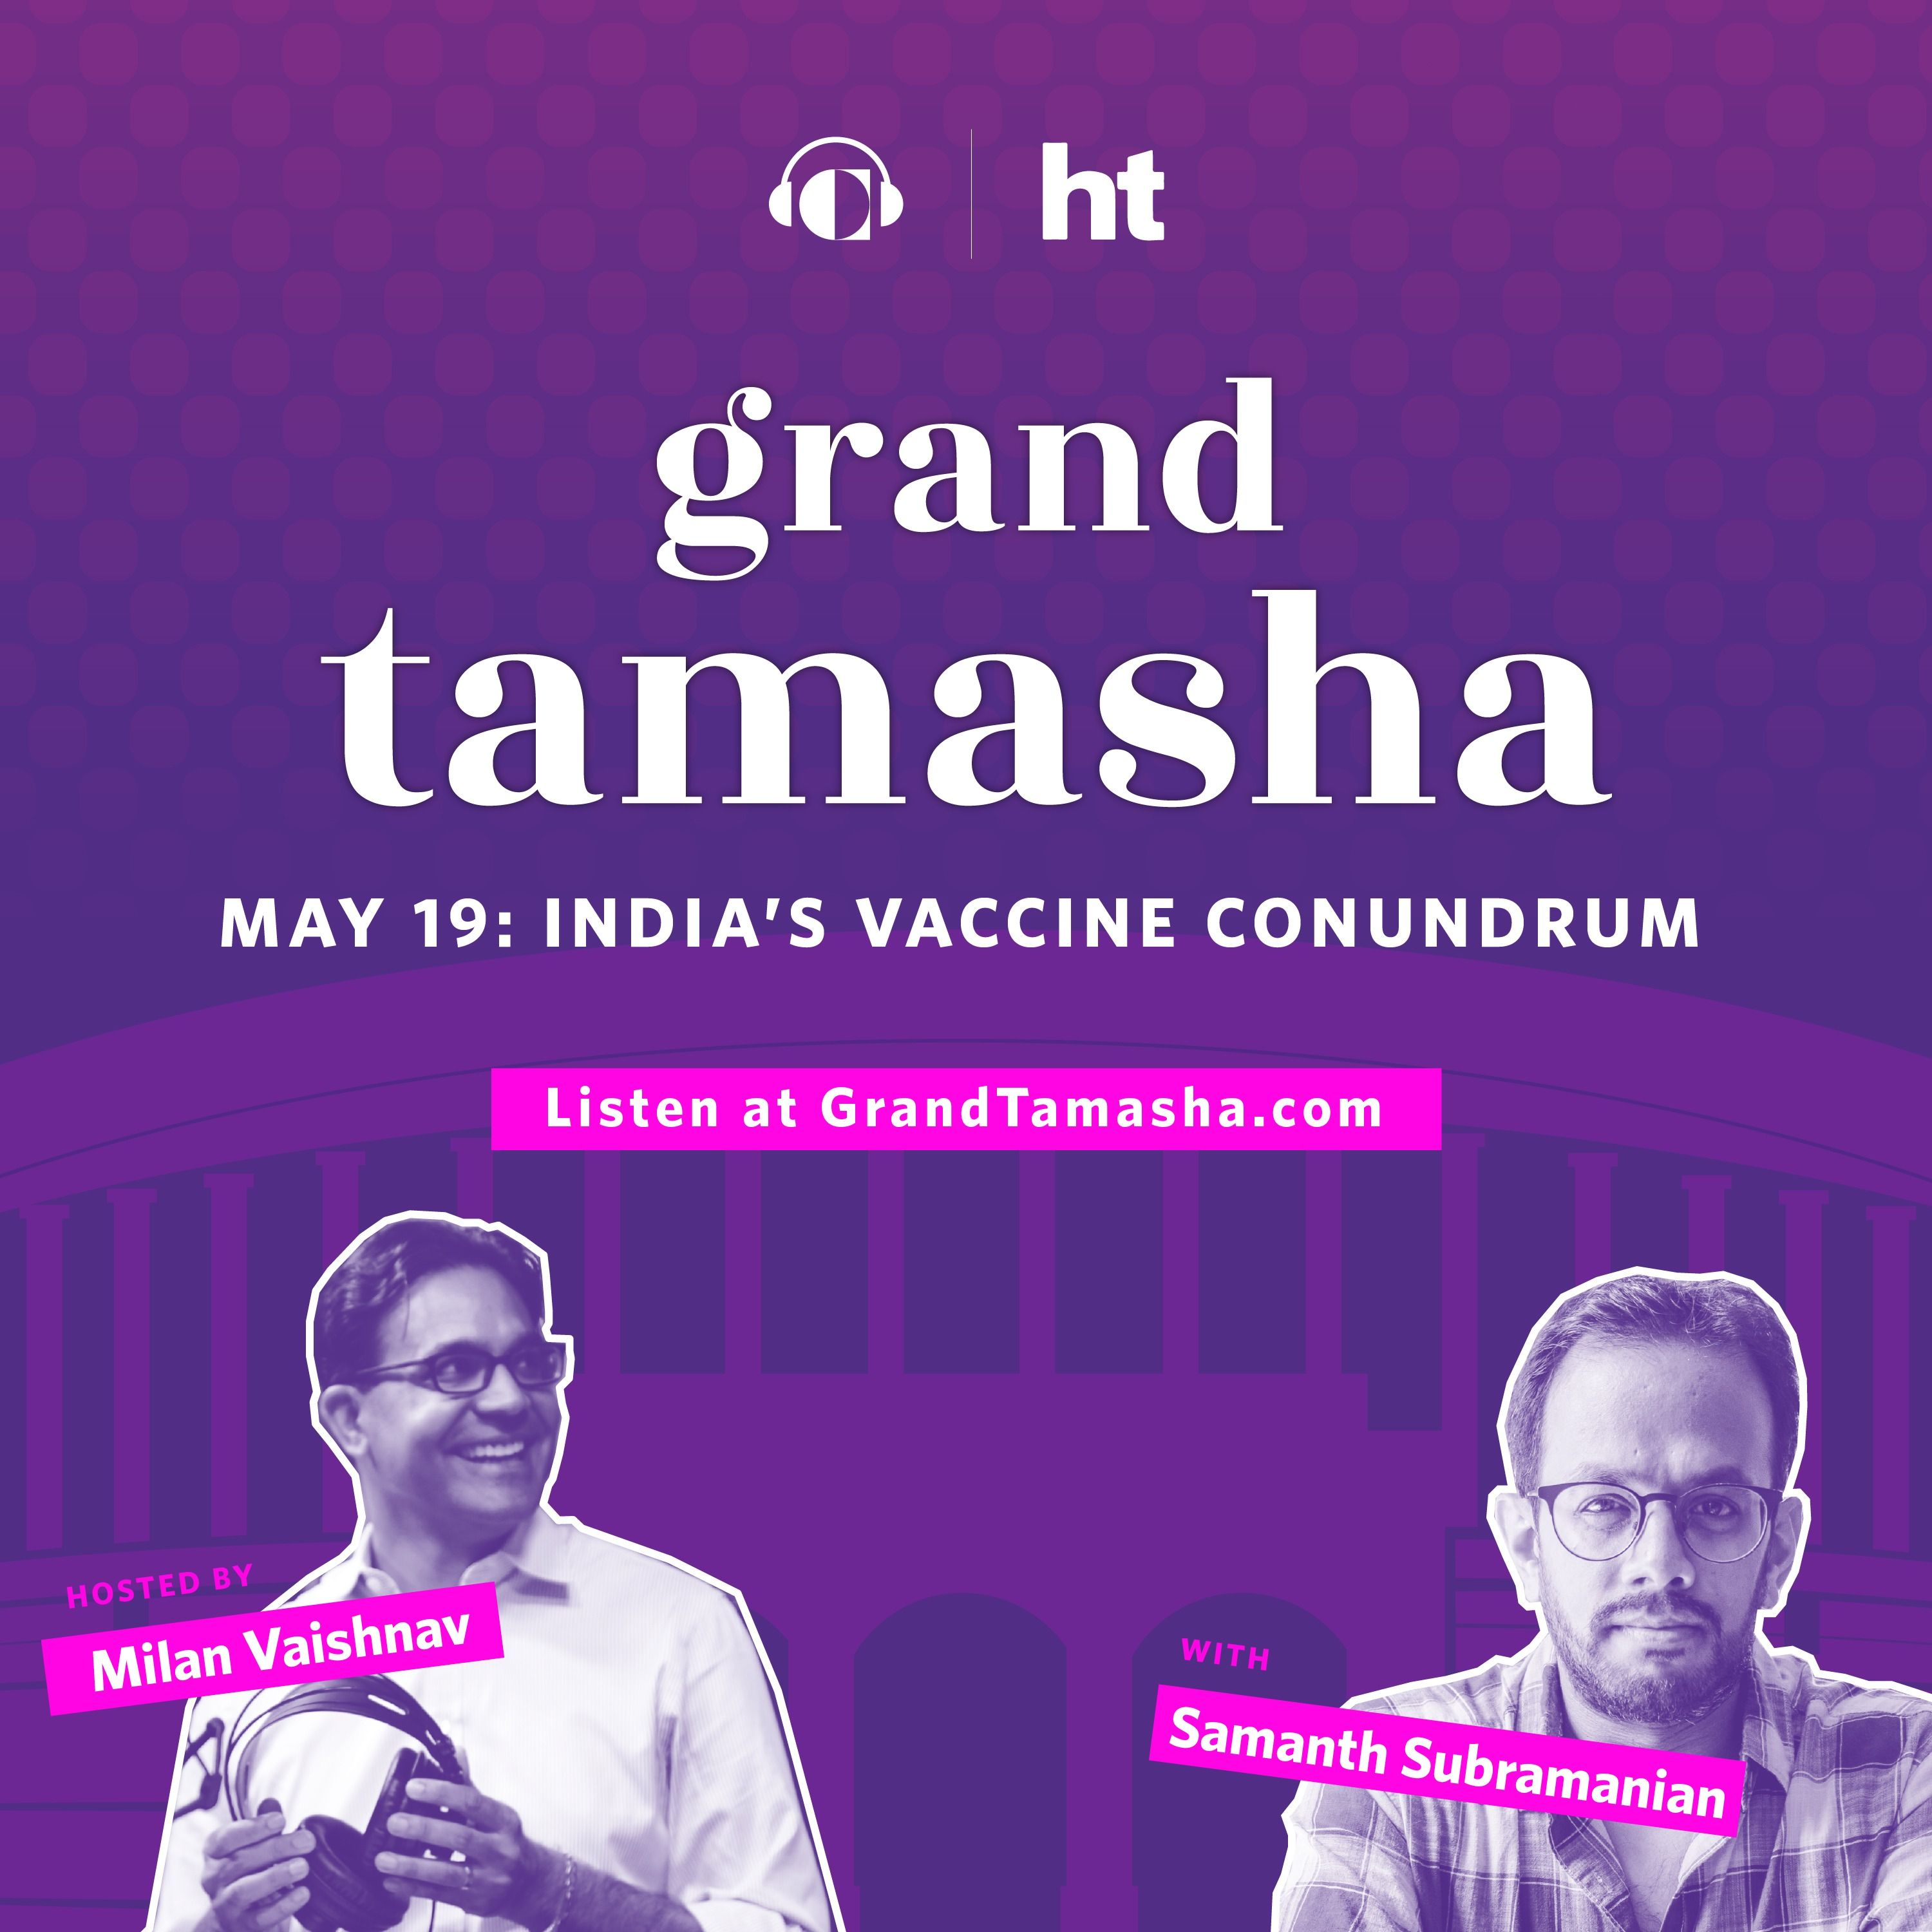 Samanth Subramanian on India's Vaccine Conundrum